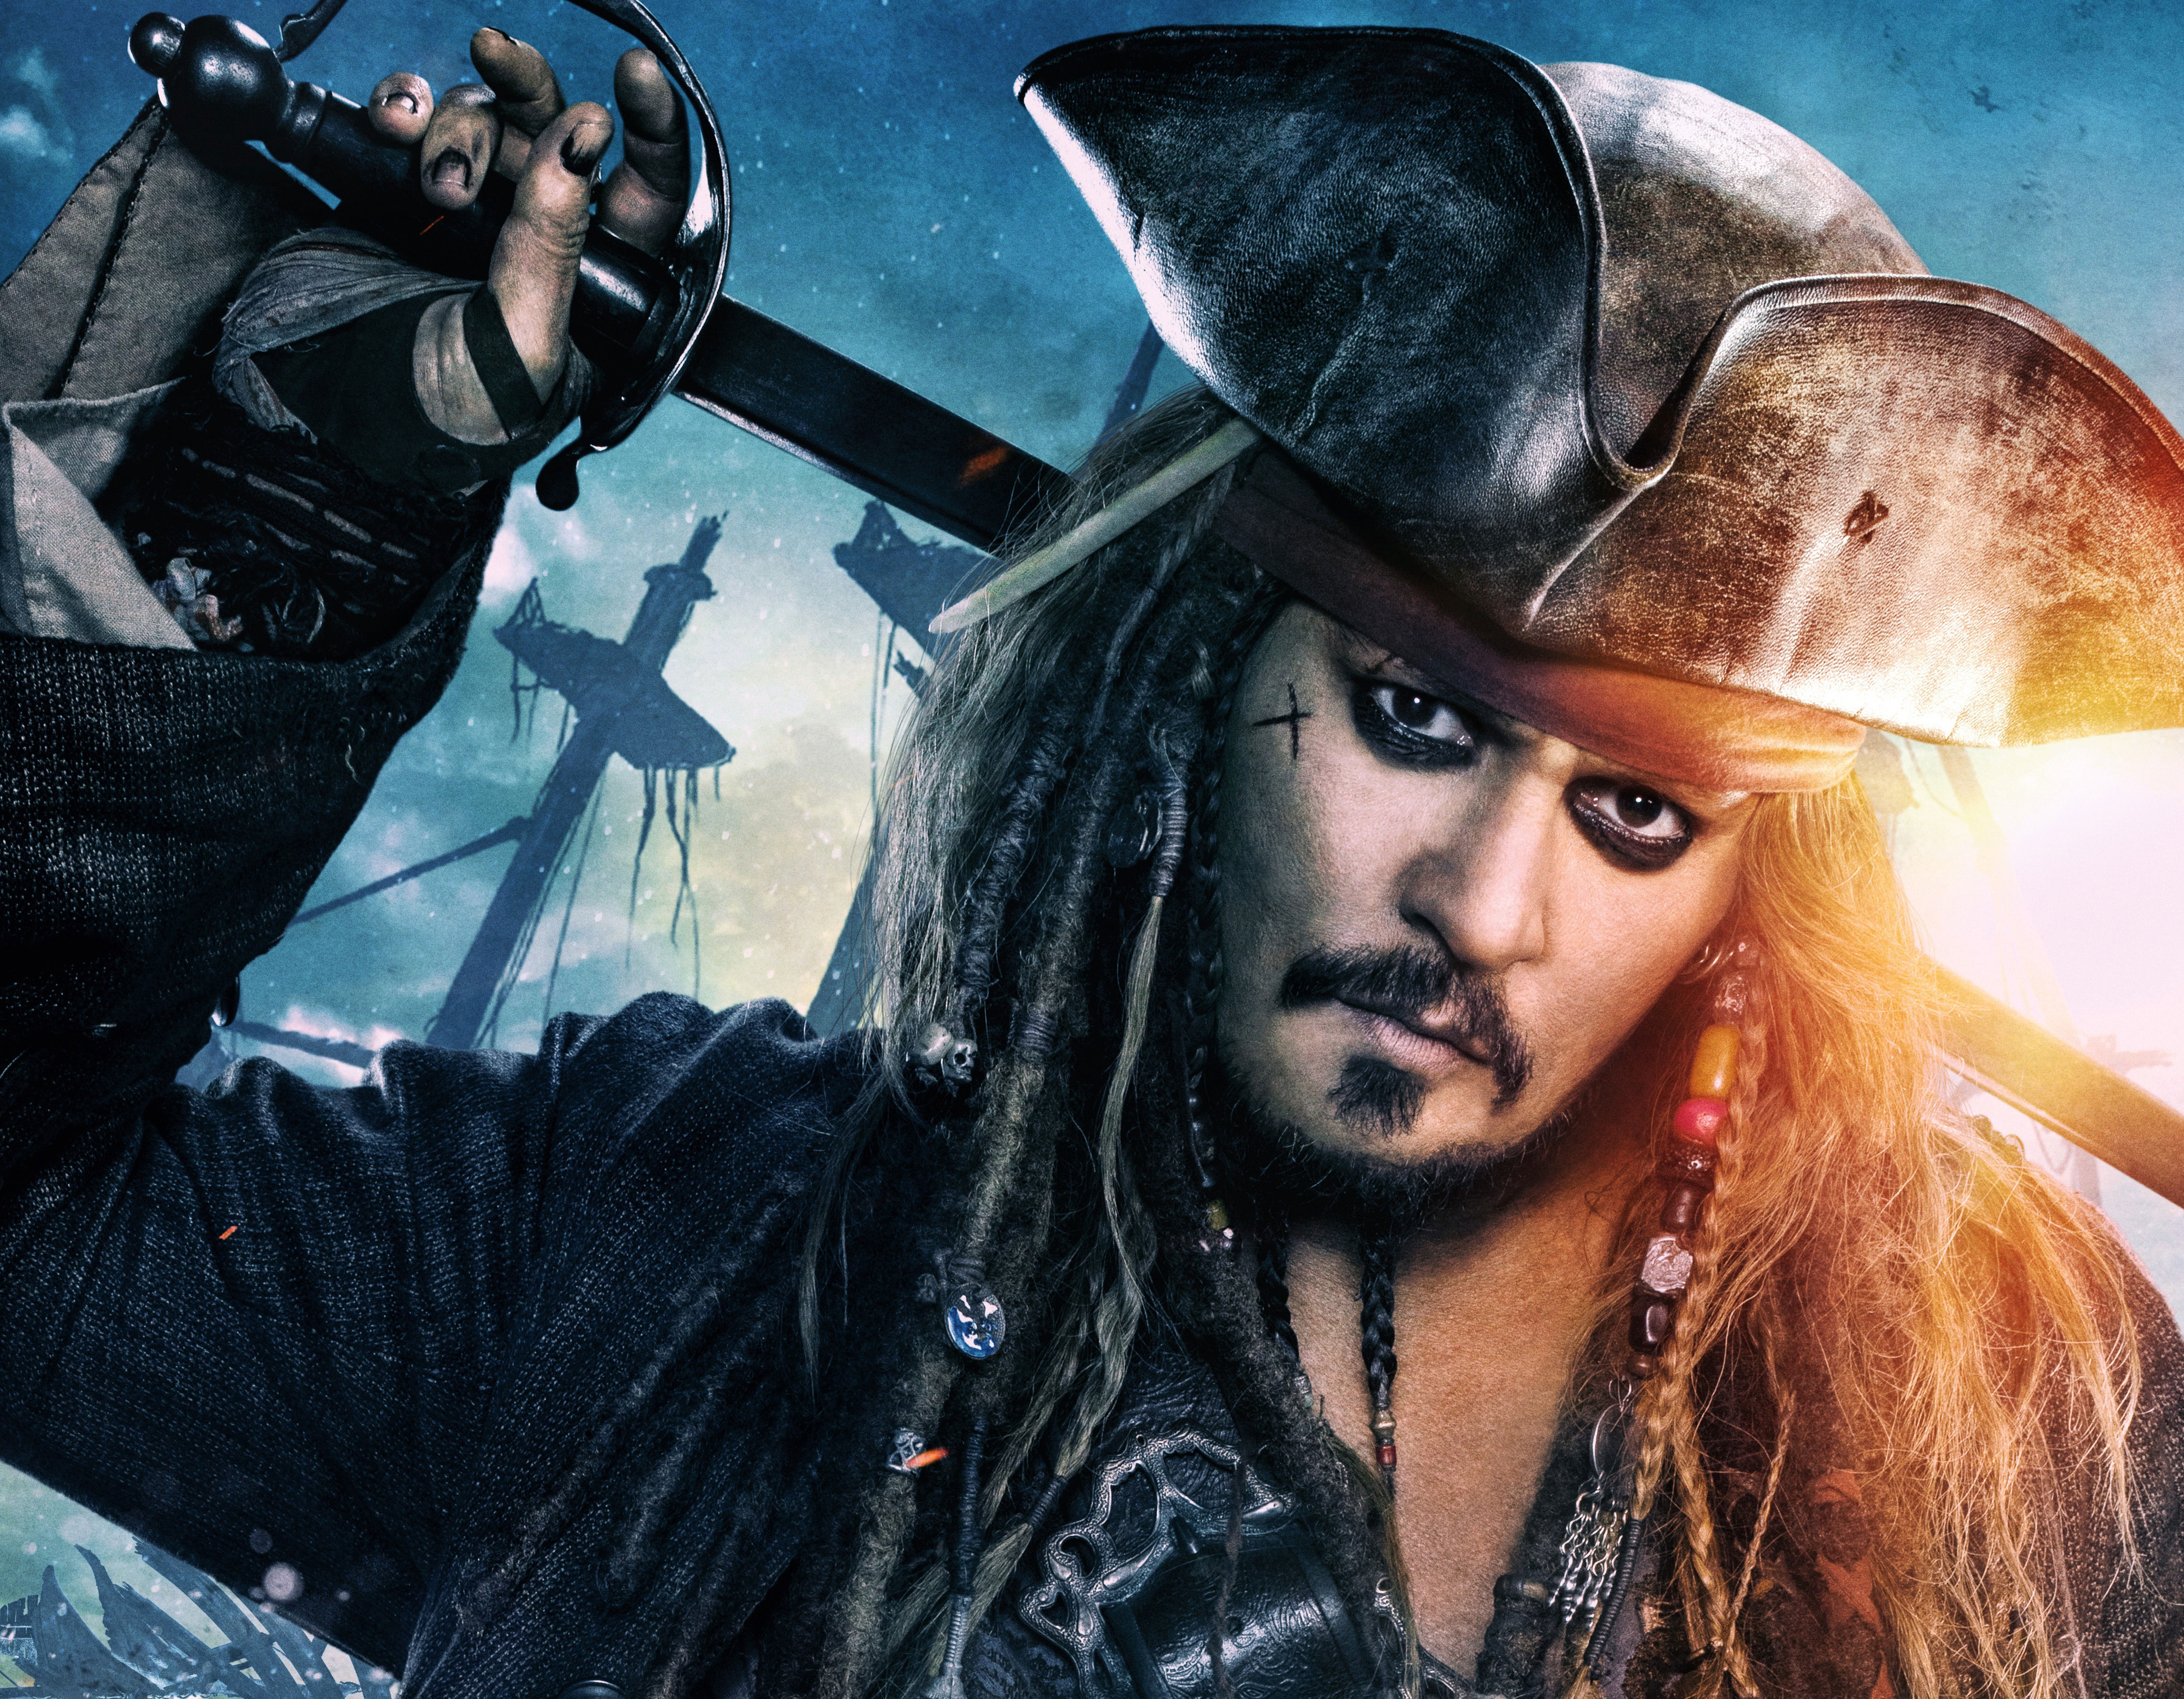 Jack sparrow in pirates of the caribbean dead men tell no - Pirates hd images ...